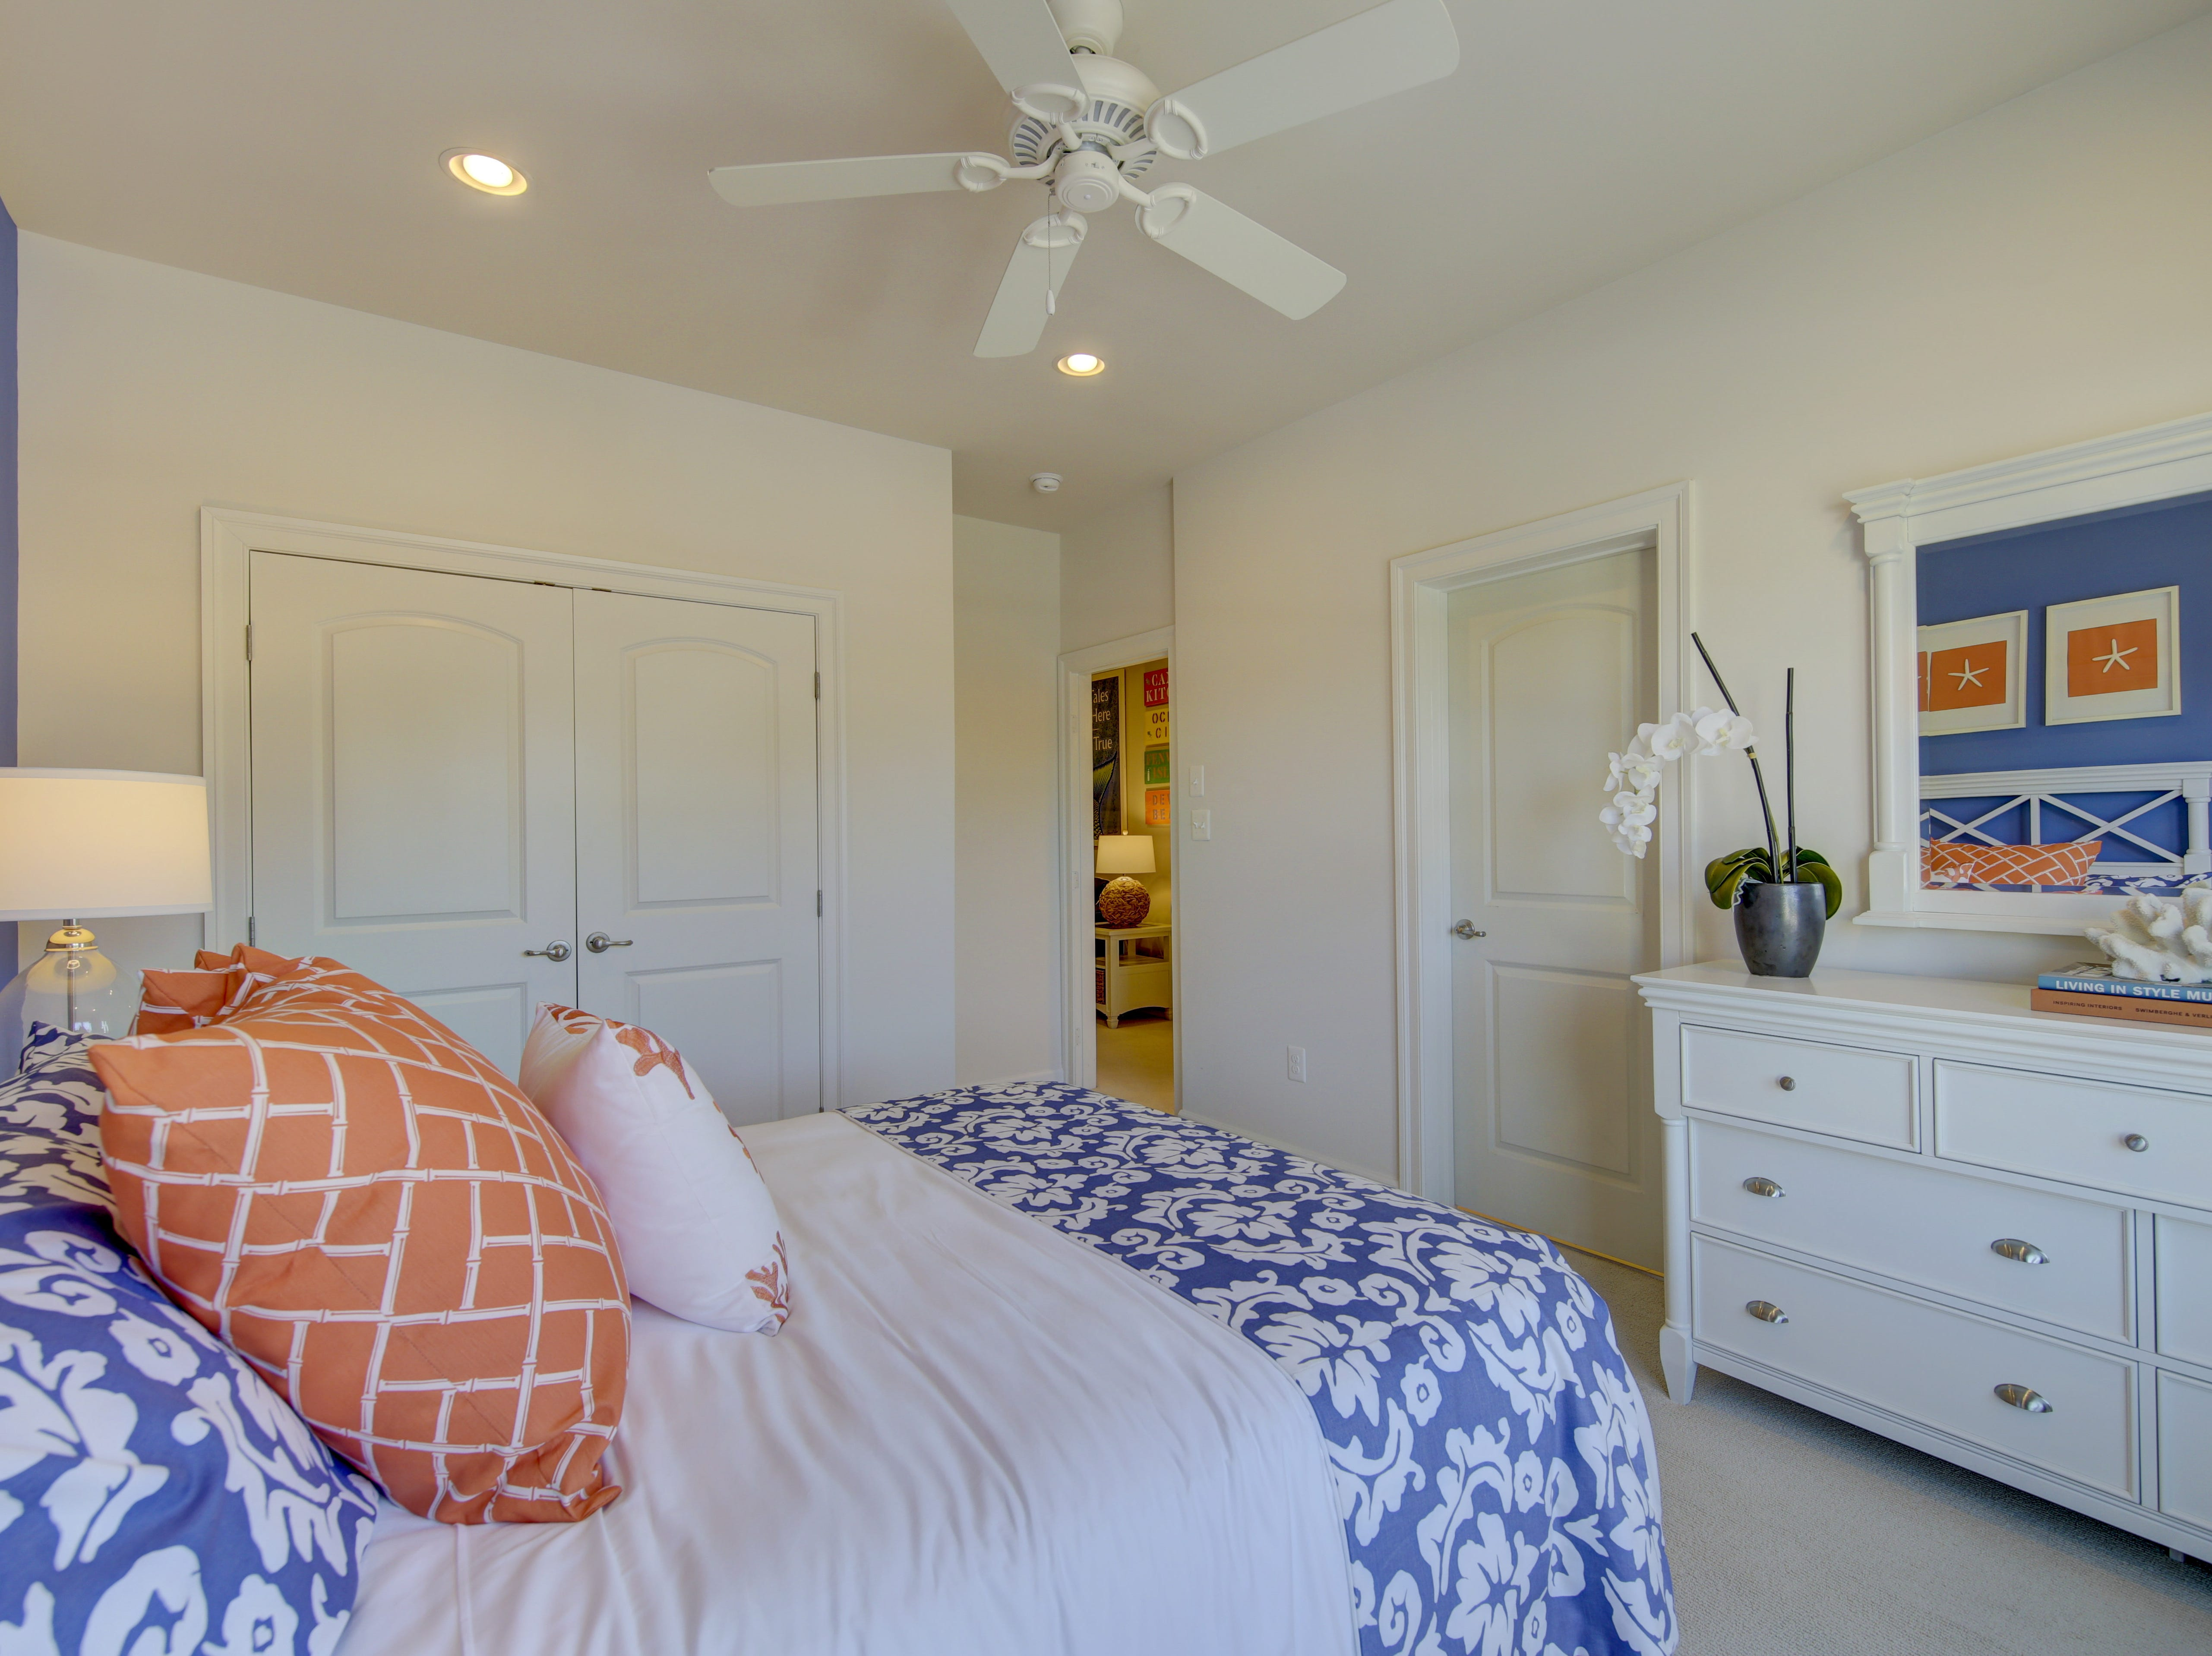 The model home at The Overlook in Selbyville has four bedrooms.